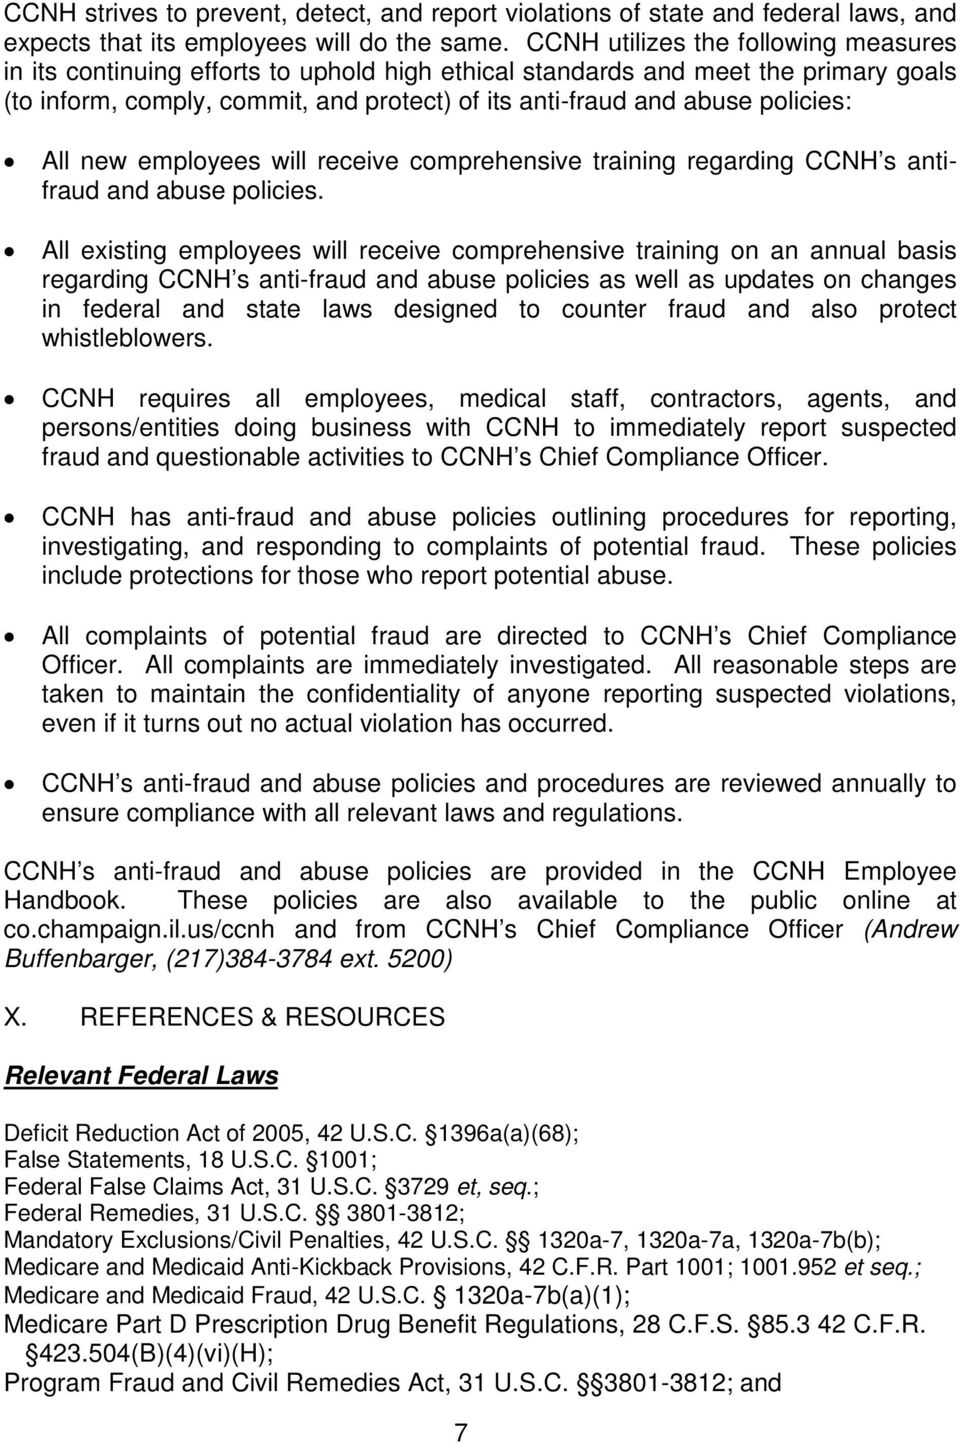 policies: All new employees will receive comprehensive training regarding CCNH s antifraud and abuse policies.